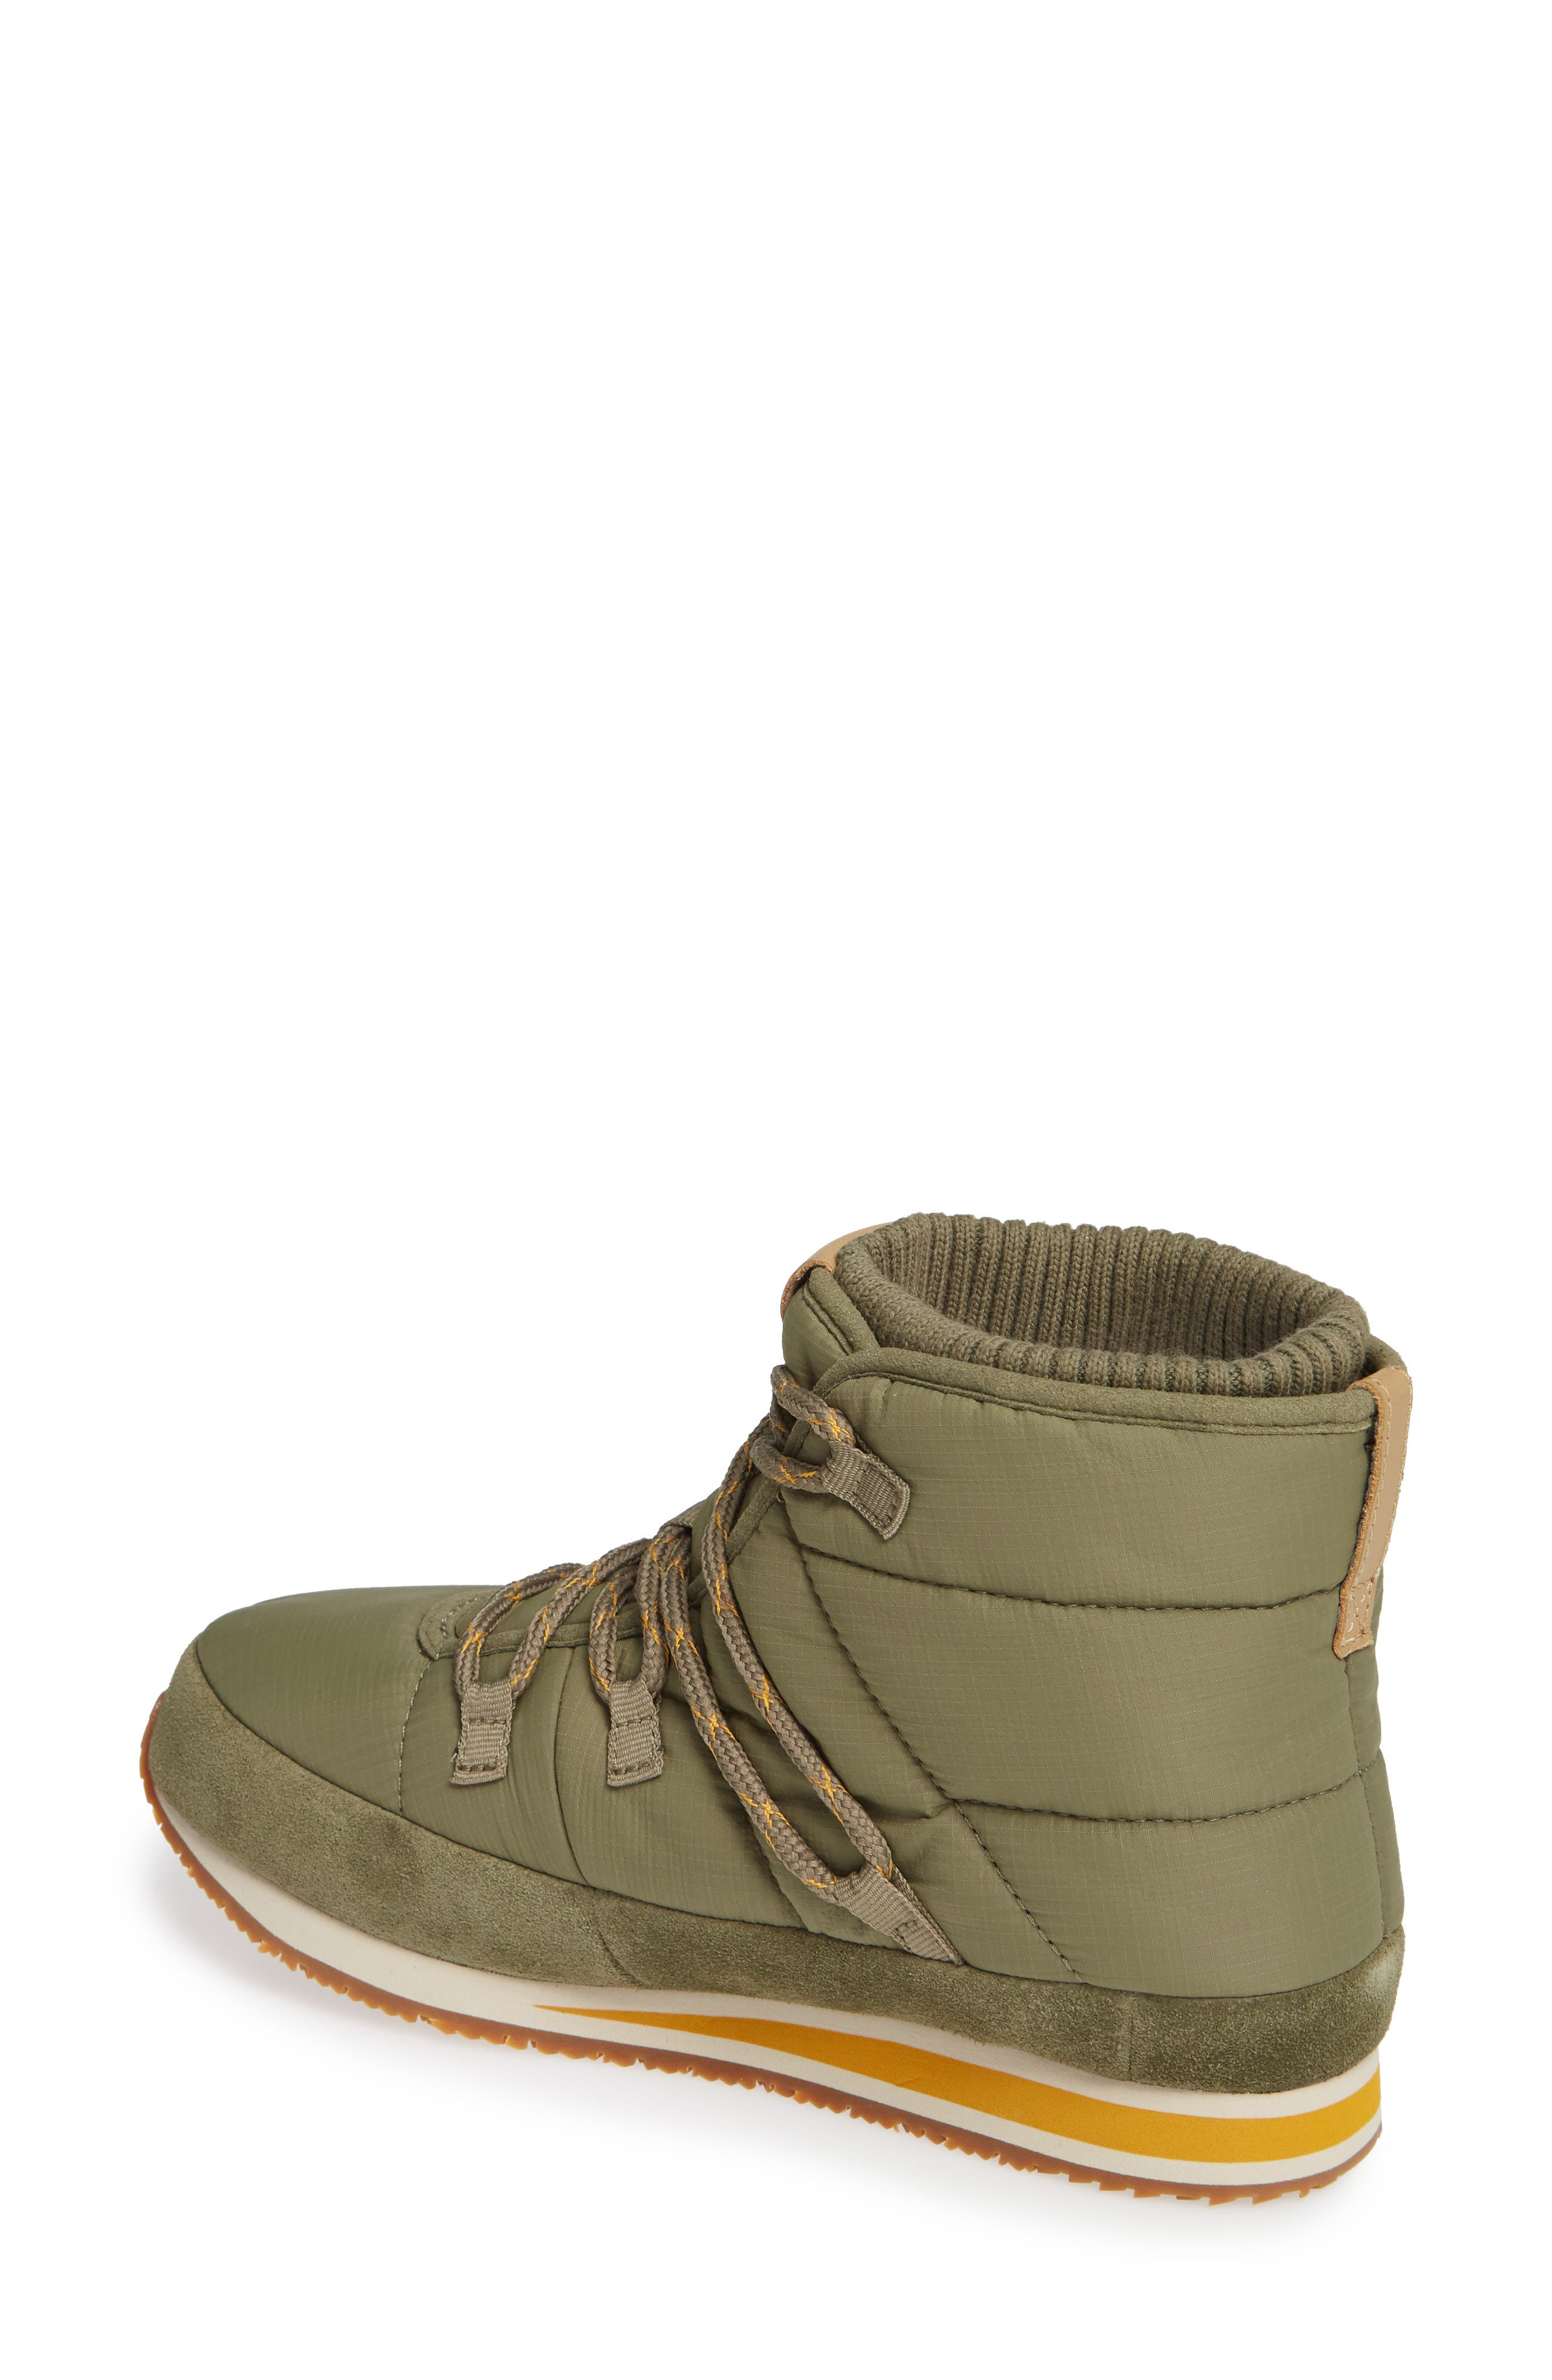 TEVA, Ember Lace-Up Winter Bootie, Alternate thumbnail 2, color, BURNT OLIVE FABRIC